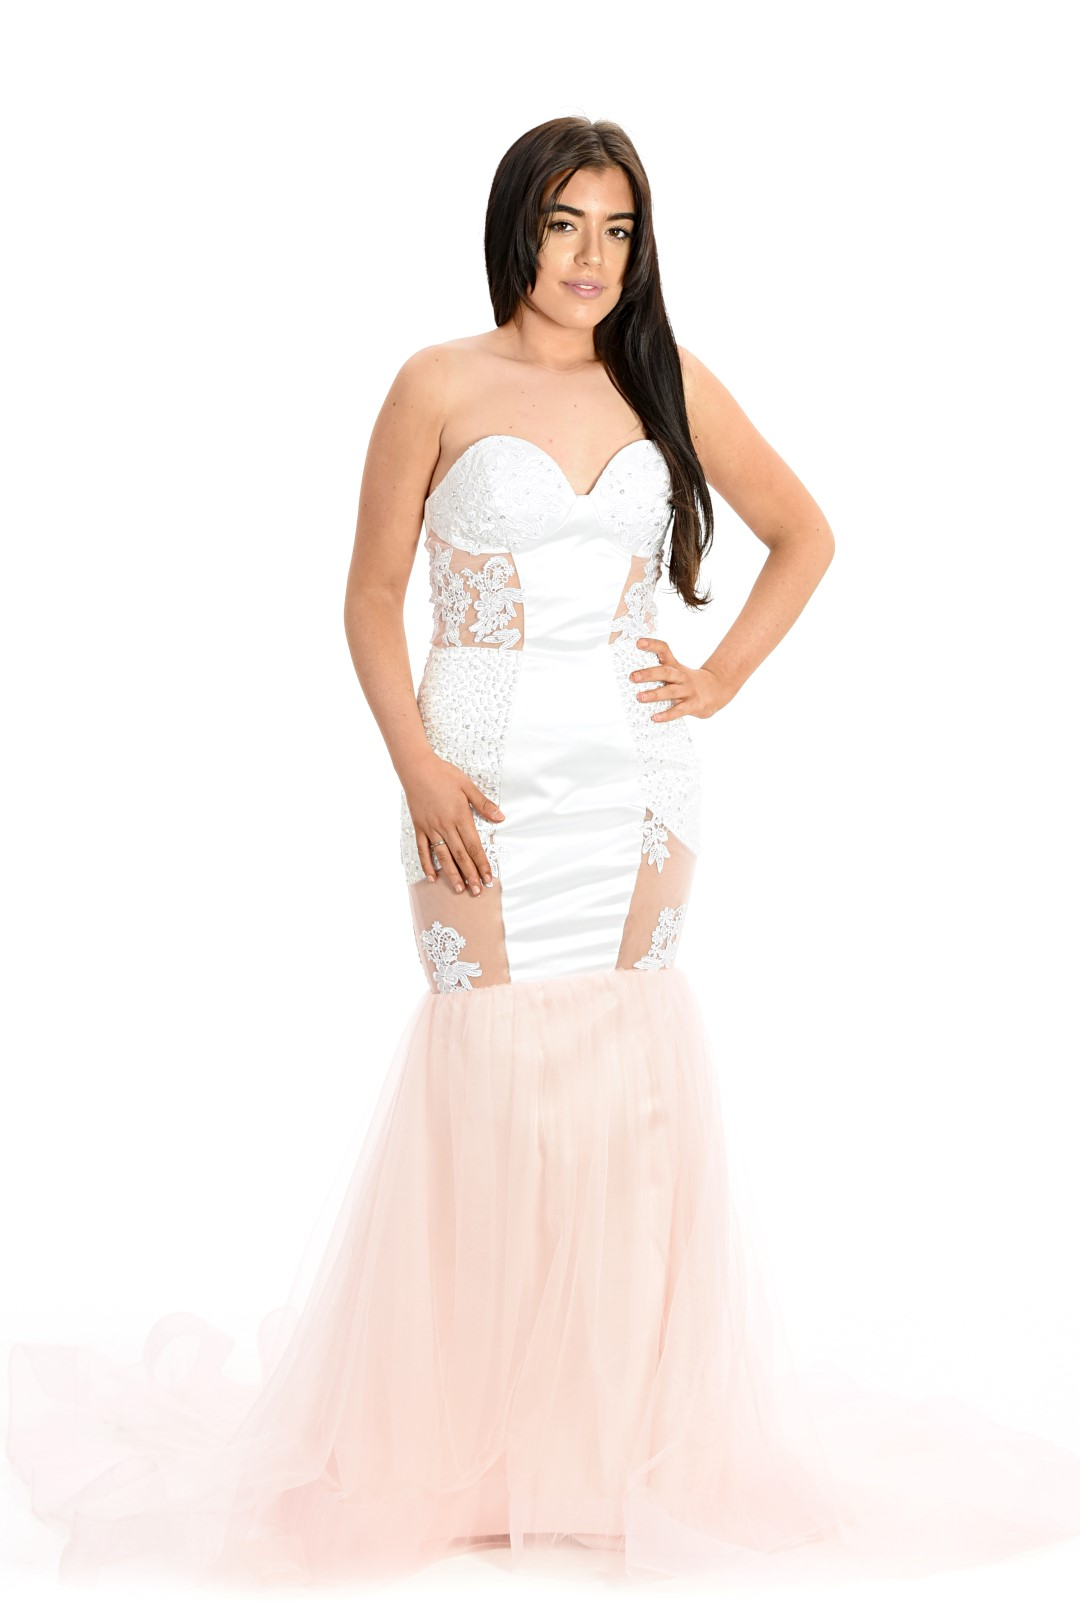 Duende Moda 1010 Pink Evening Gown Mermaid Lace